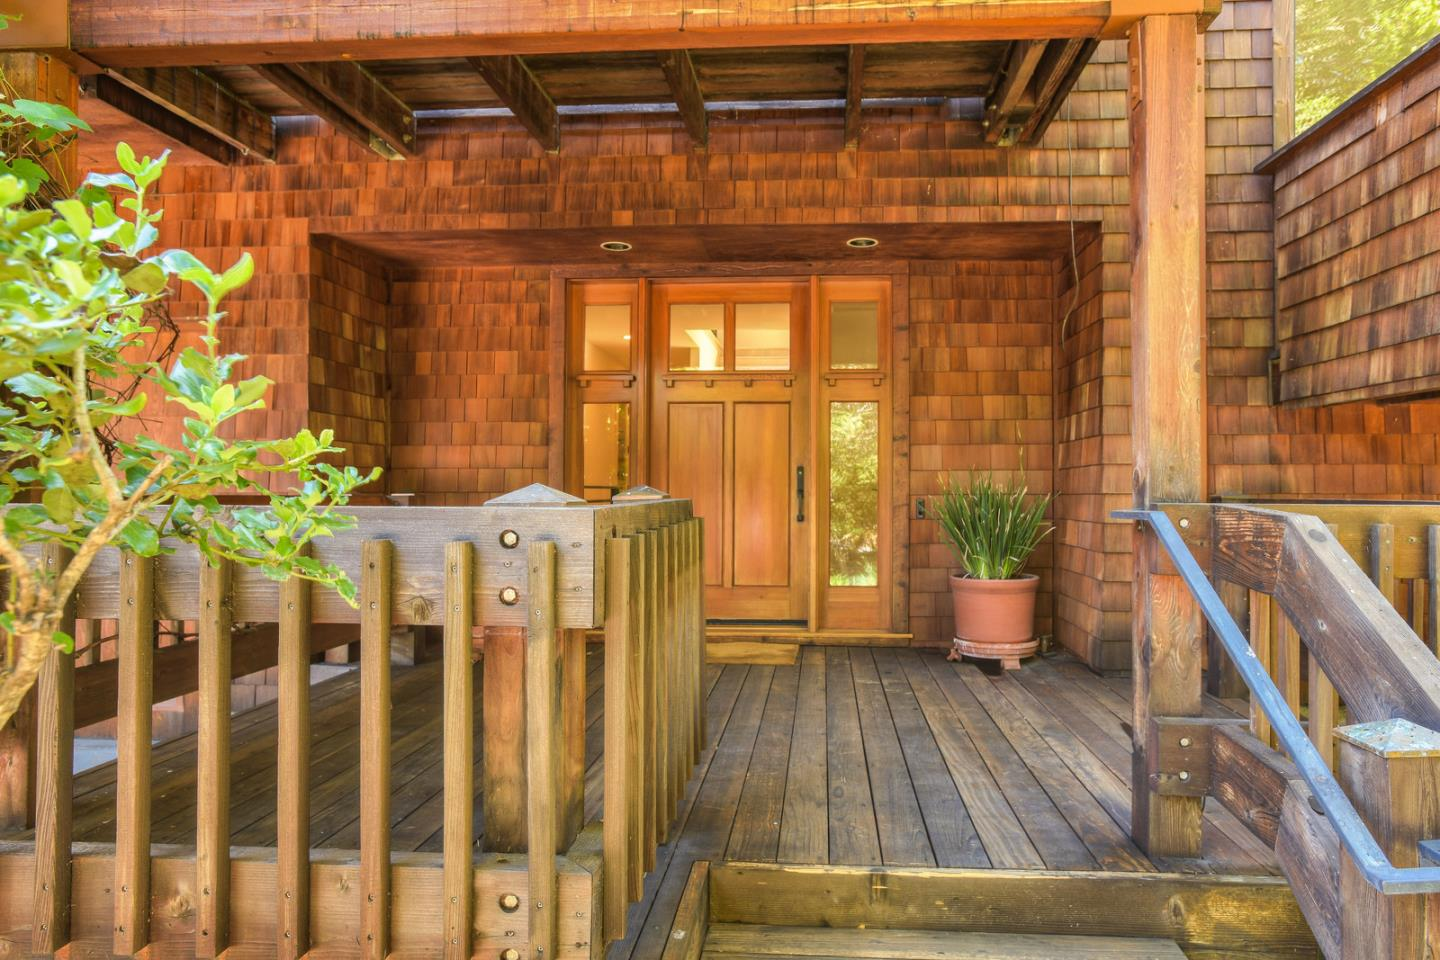 23 VALLEY OAK ST, PORTOLA VALLEY, CA 94028